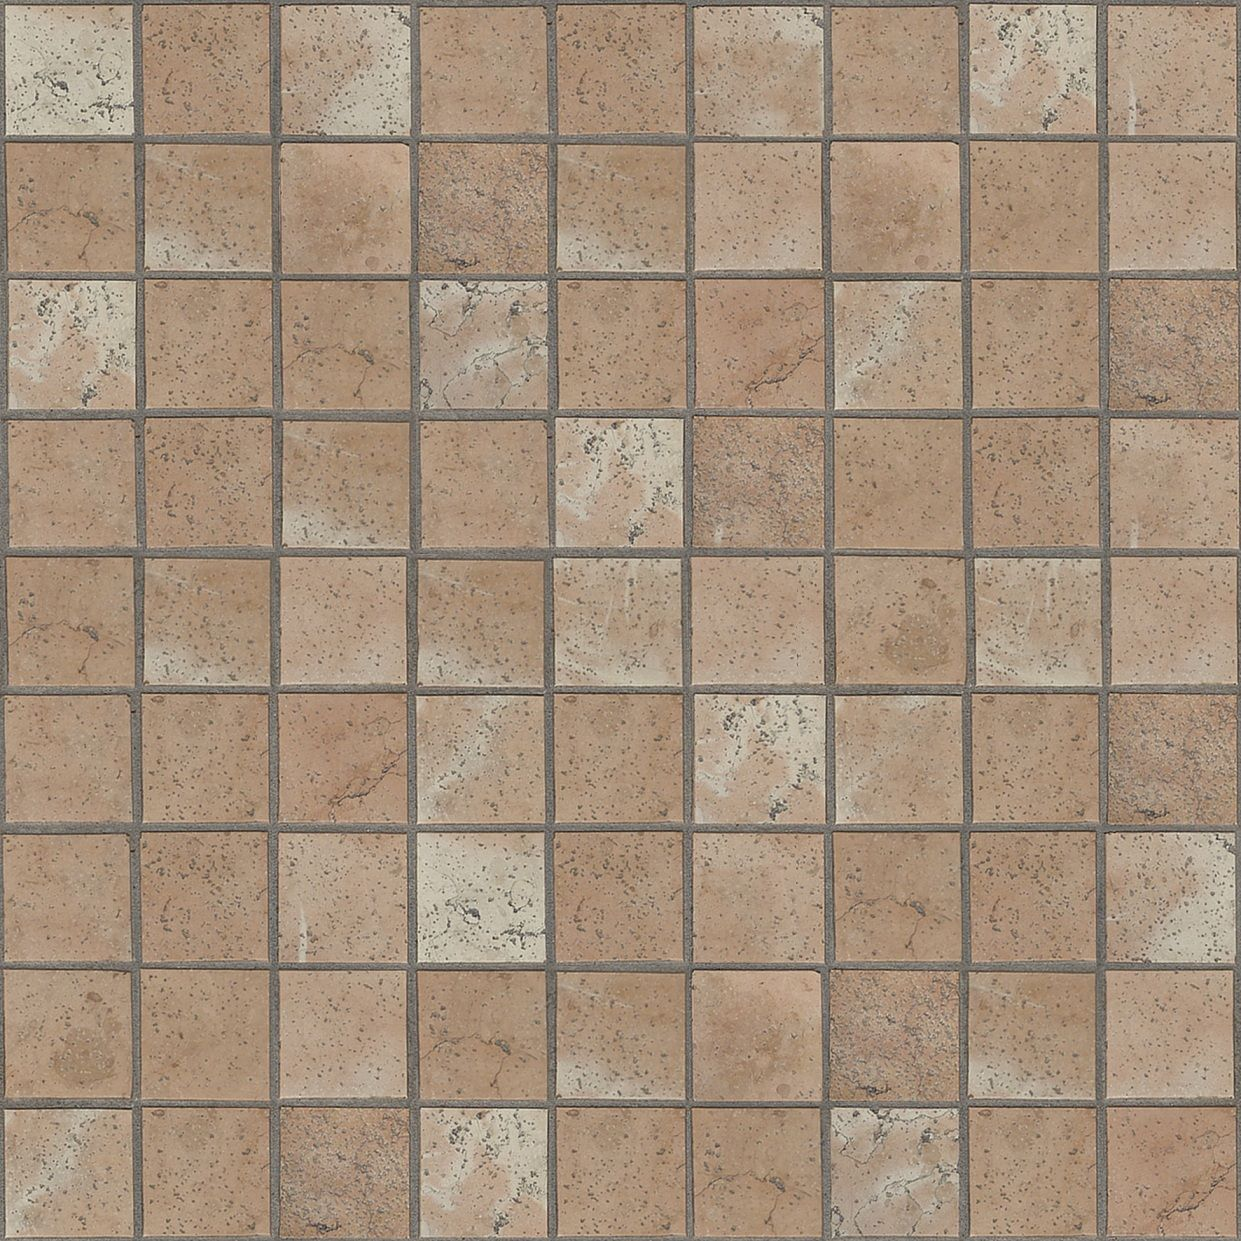 Bathroom Tile Texture Seamless bathroom floor tile texture seamless | stuff to buy | pinterest